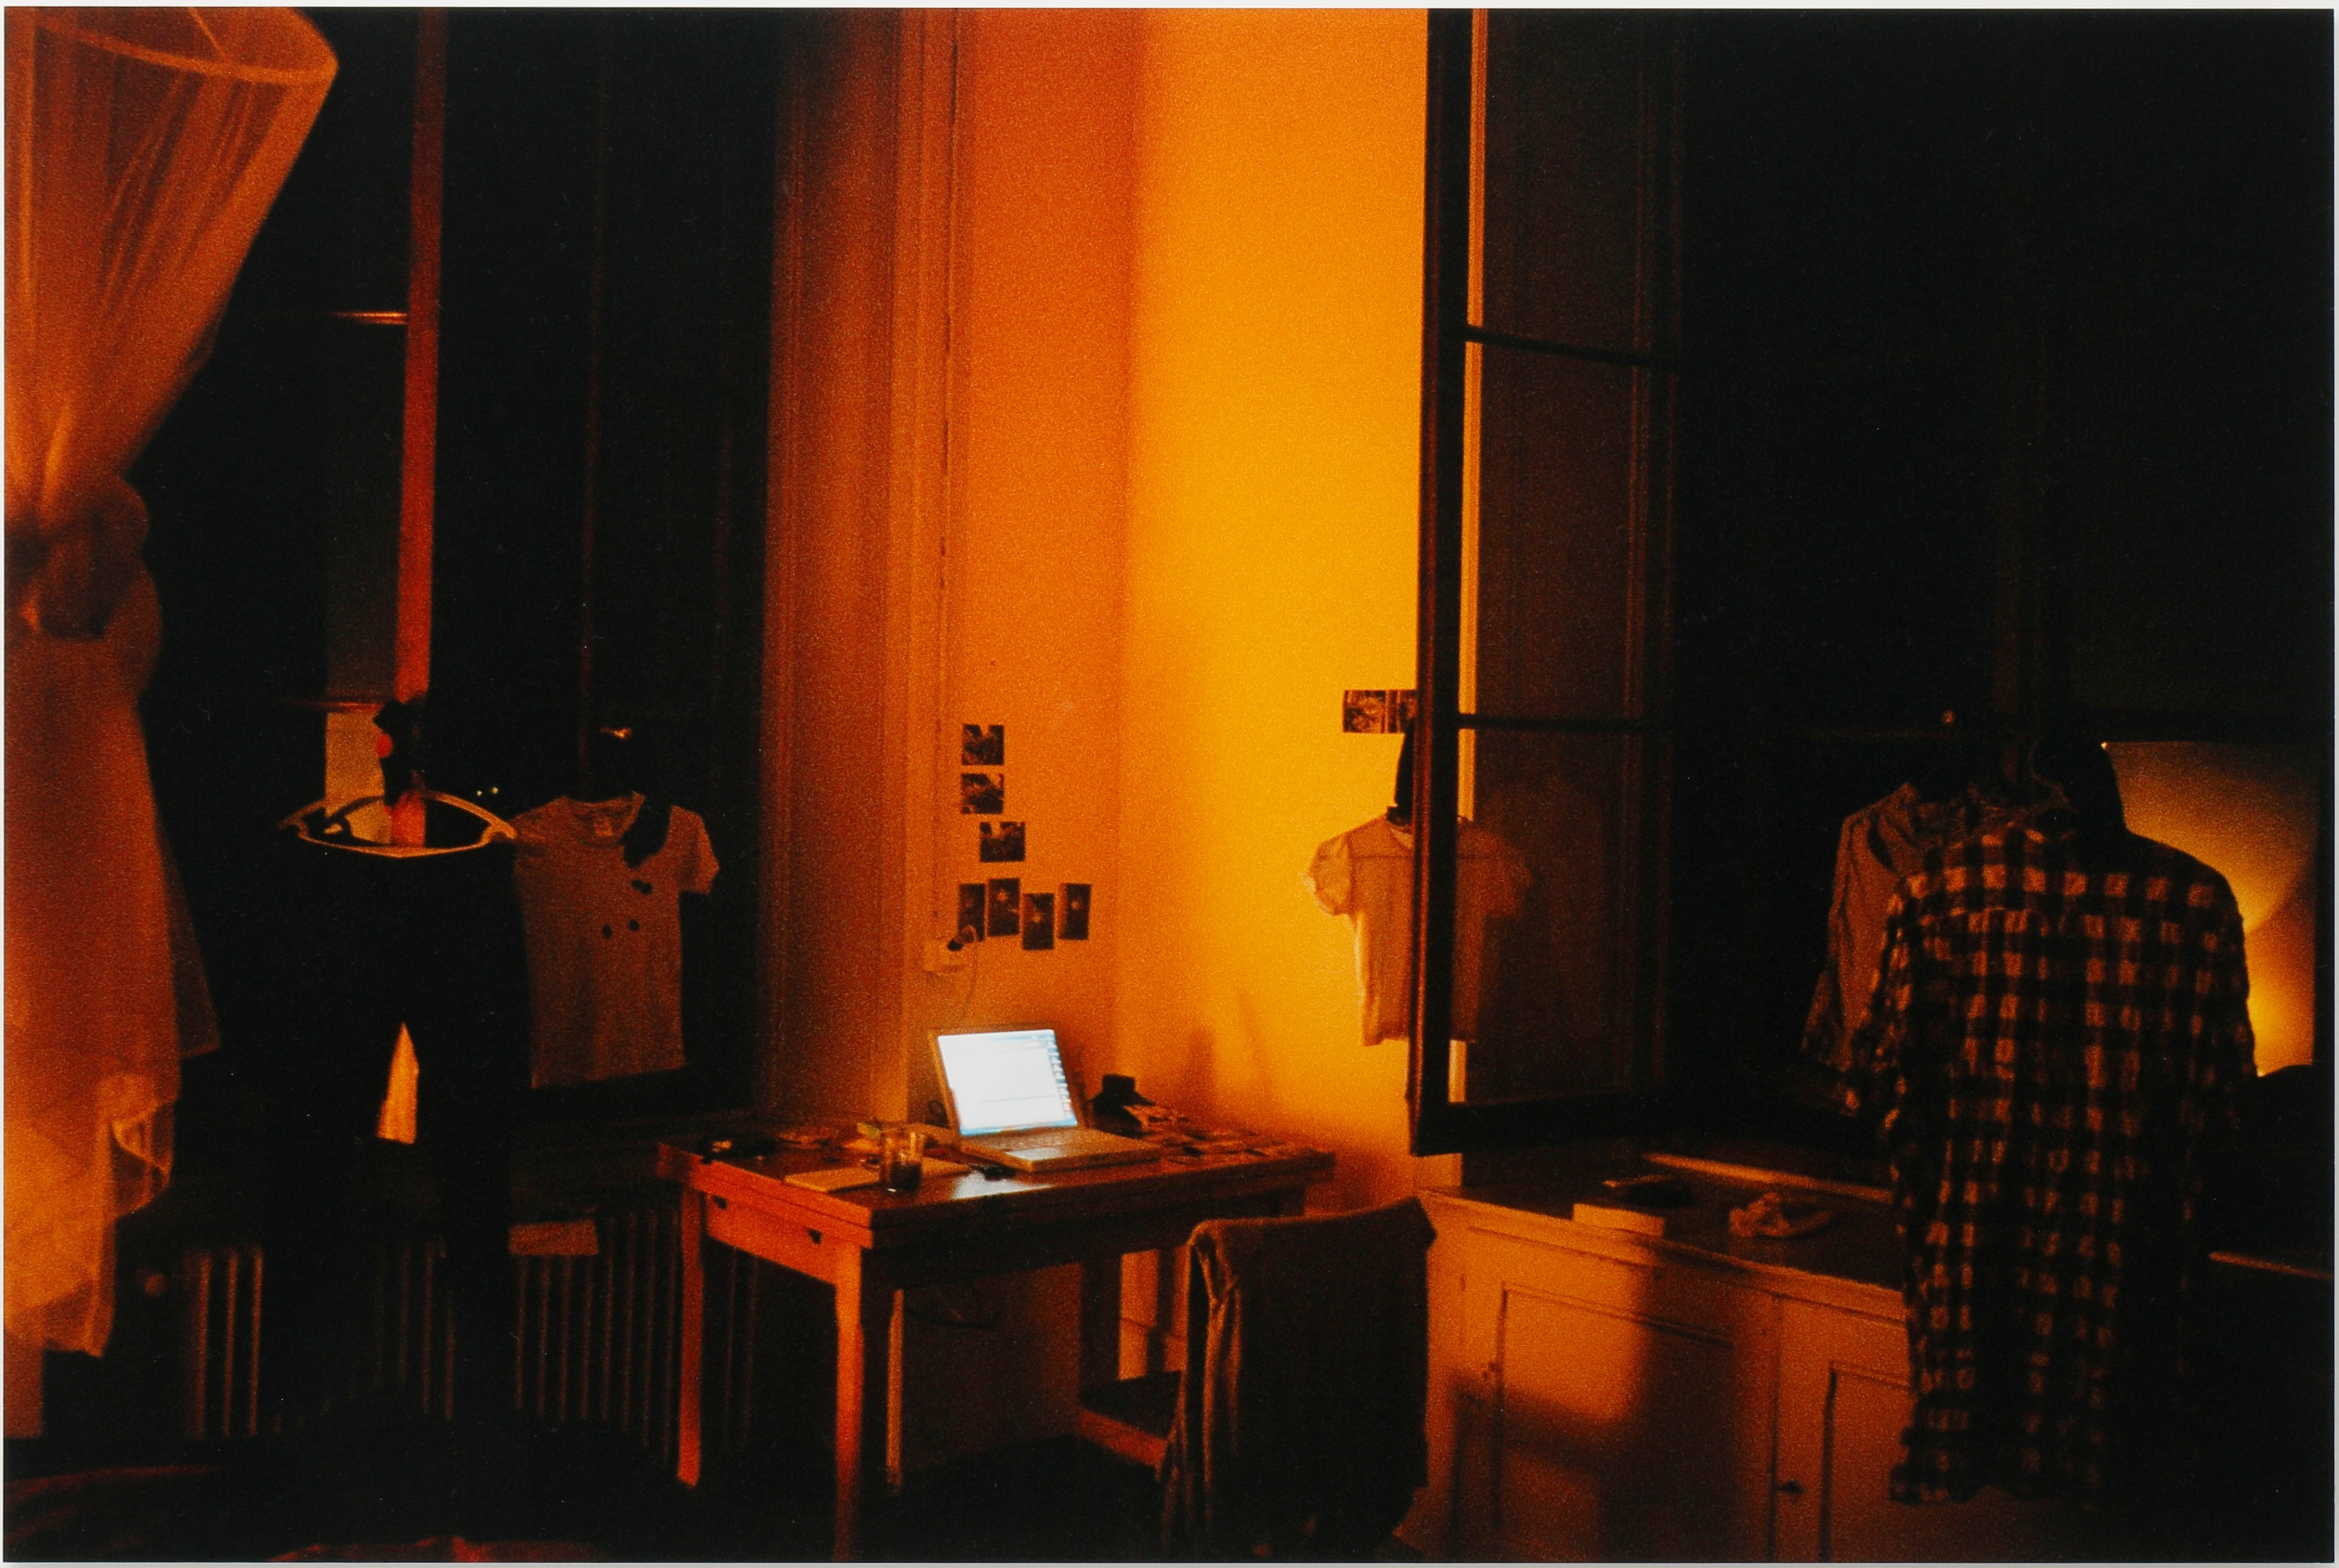 Our Bedroom Night 2007 By Yurie Nagashima